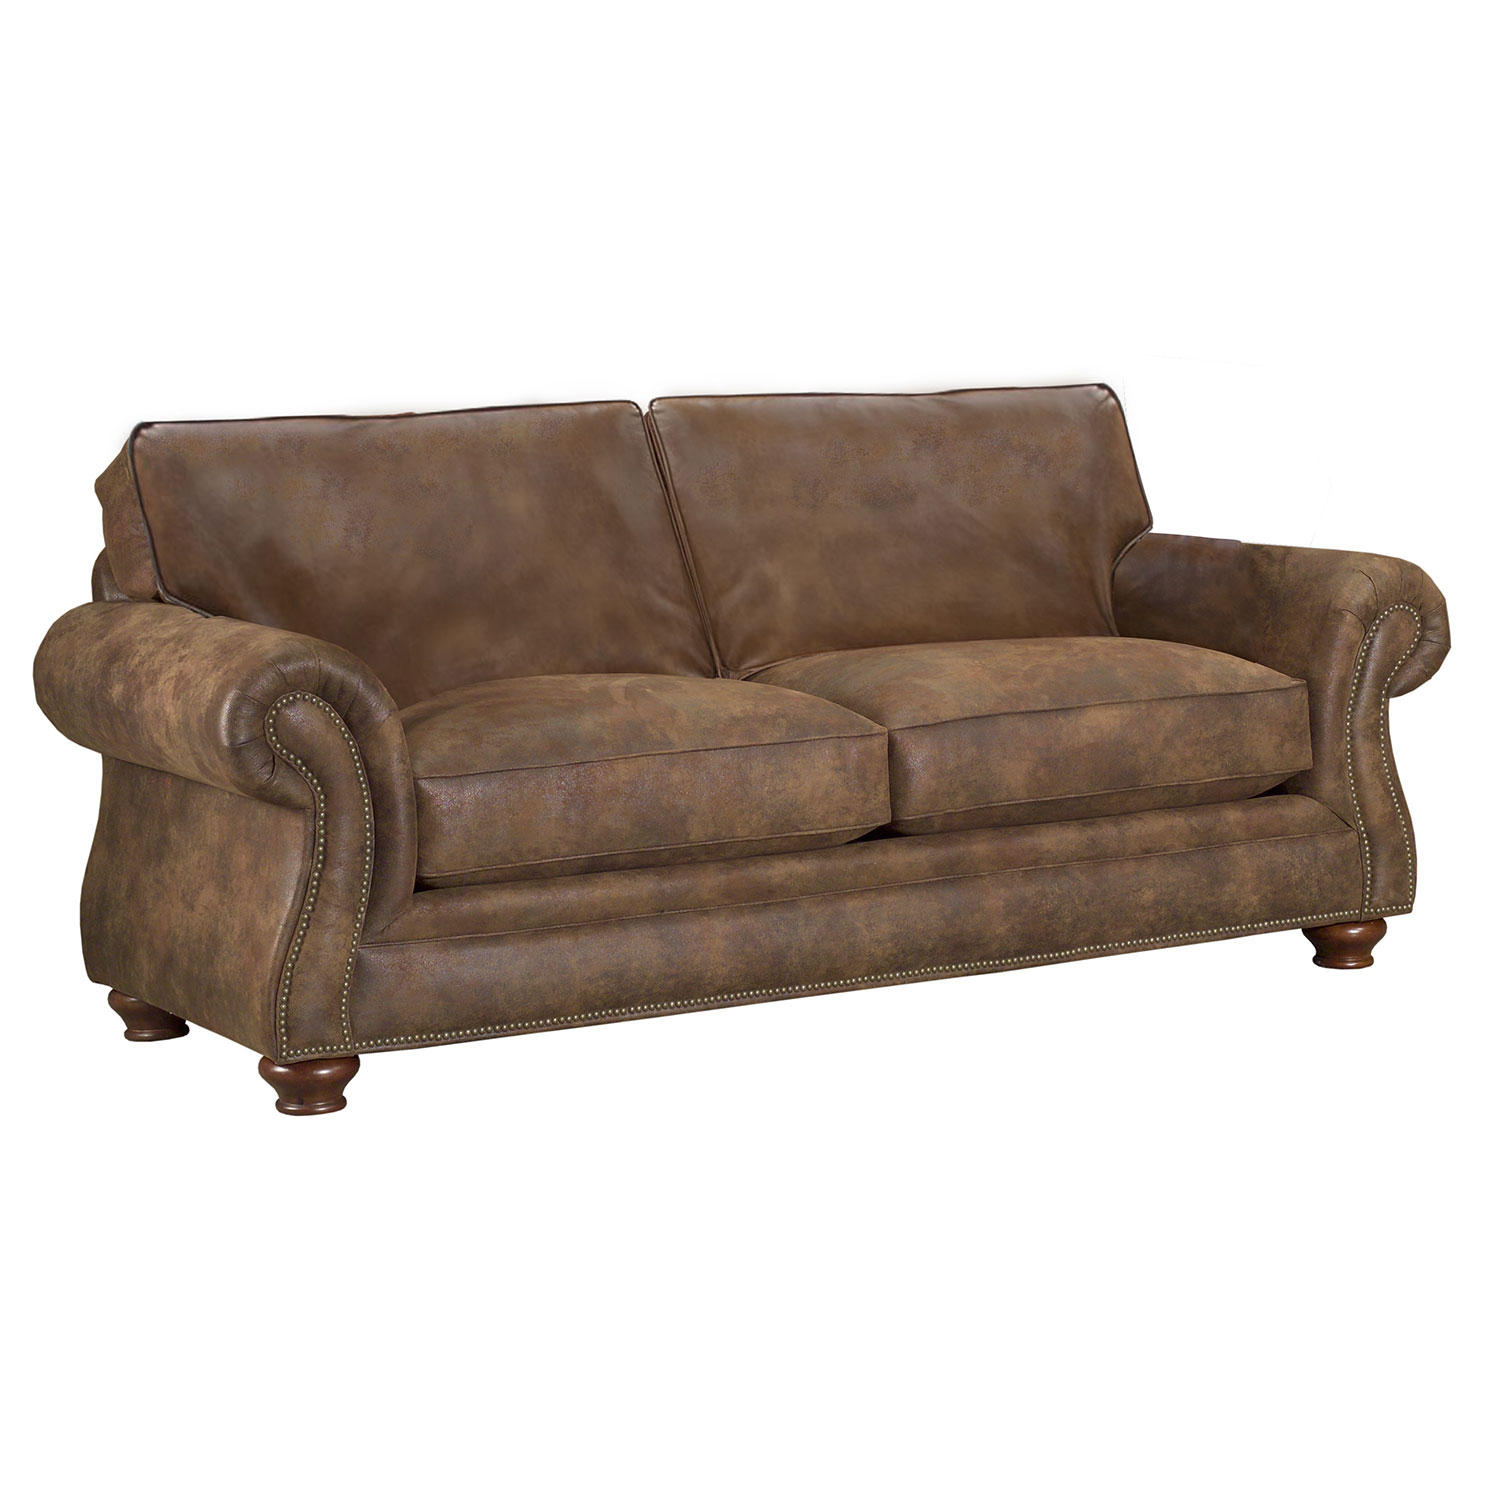 Stone & Leigh Benson Stationary Sofa